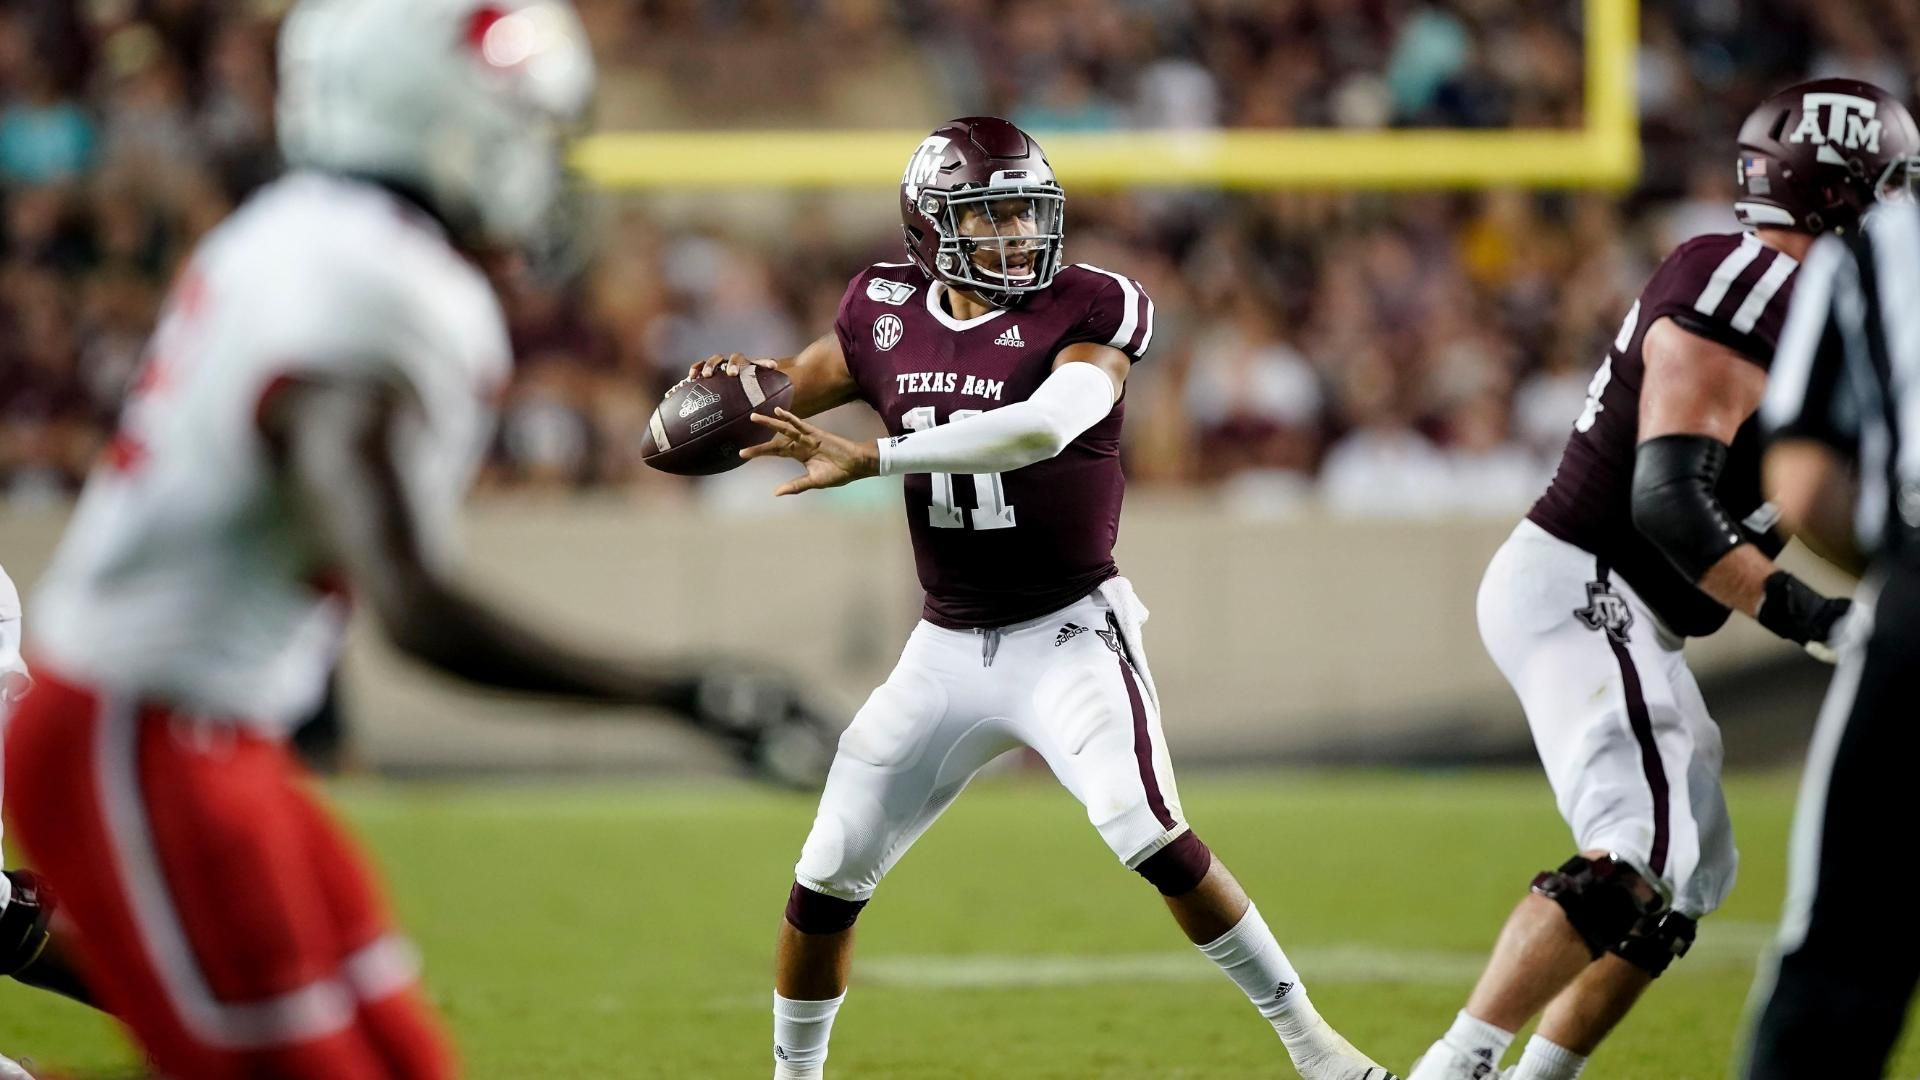 Mond musters up 317 yards in Aggies' dominant win